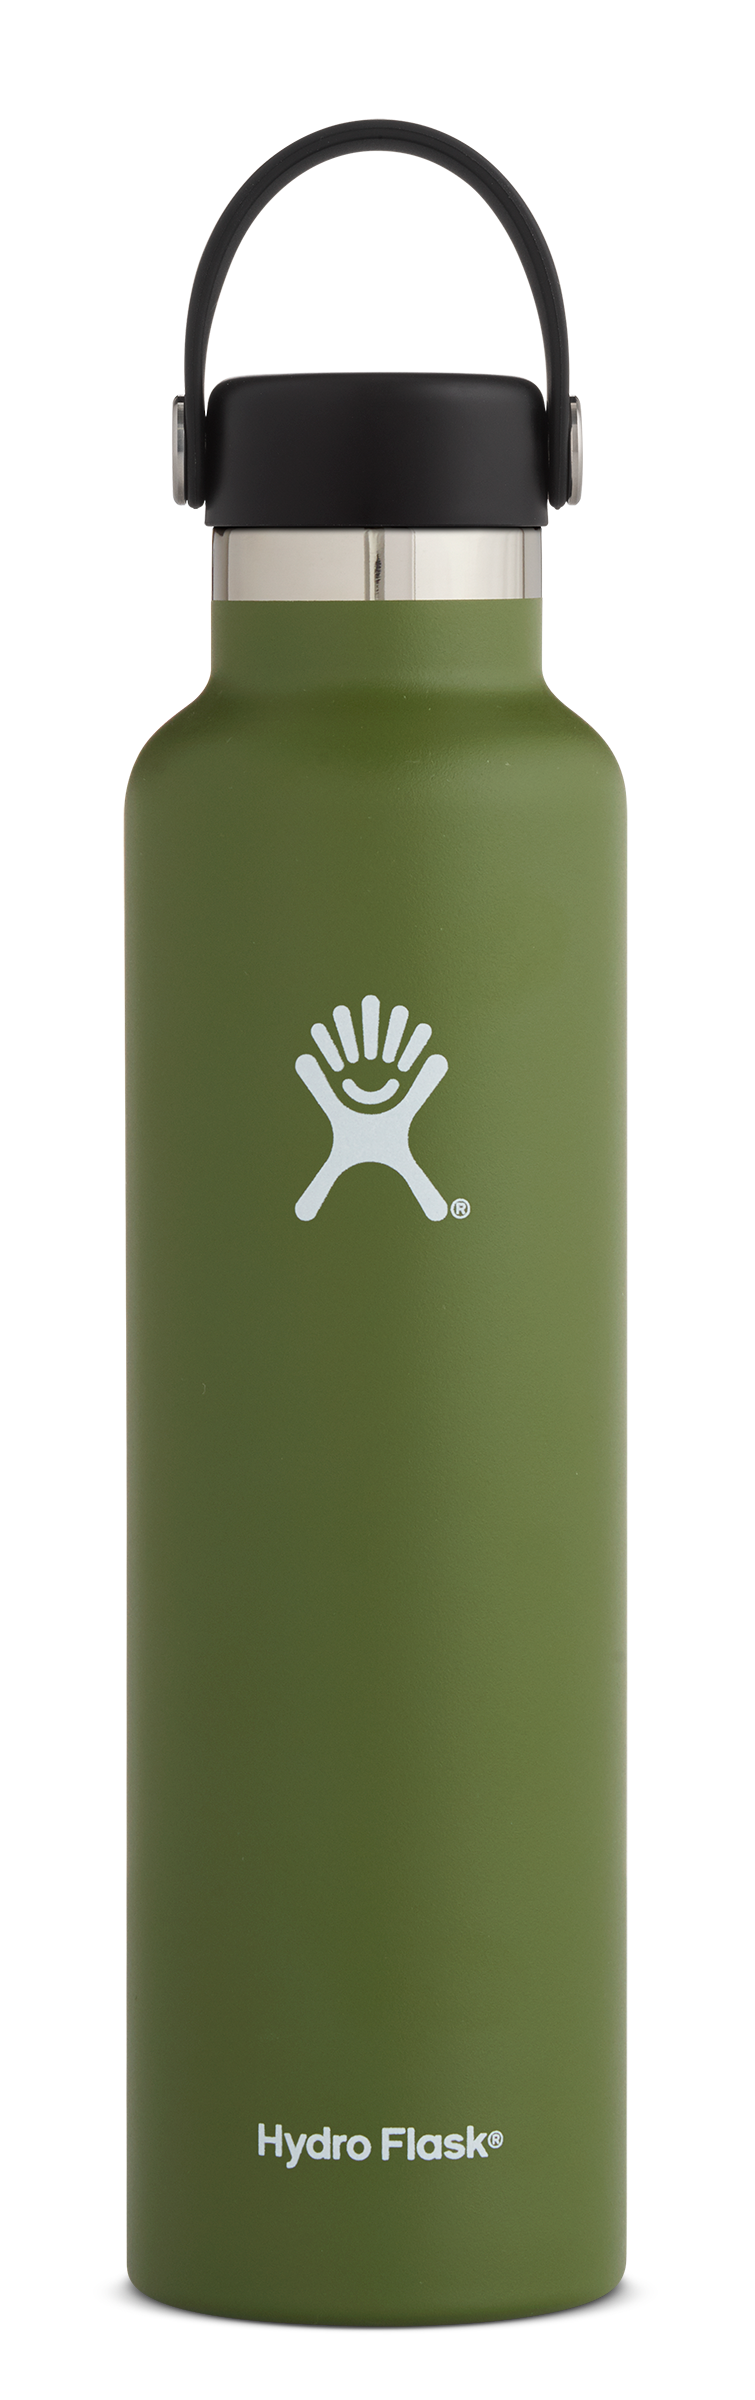 Hydro-Flask-24-oz-Standard-Mouth-Olive